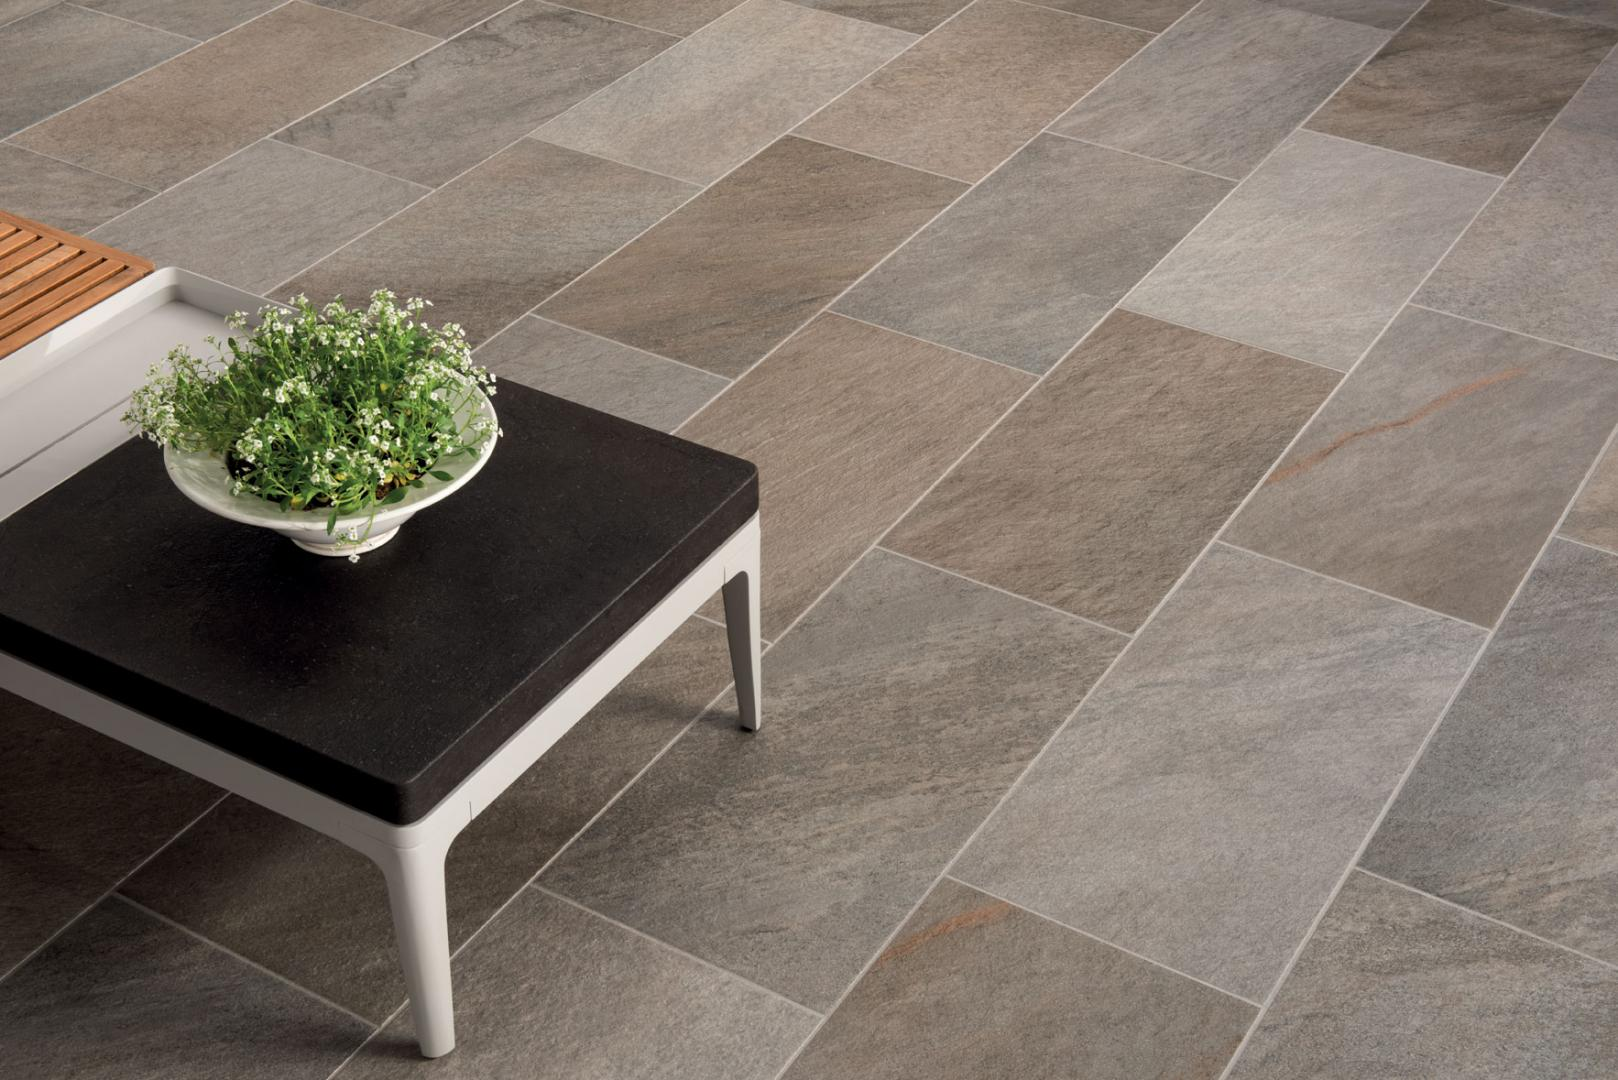 Piastrelle Keope Prezzi Keope Point Ceramiche Sassuolo Outlet